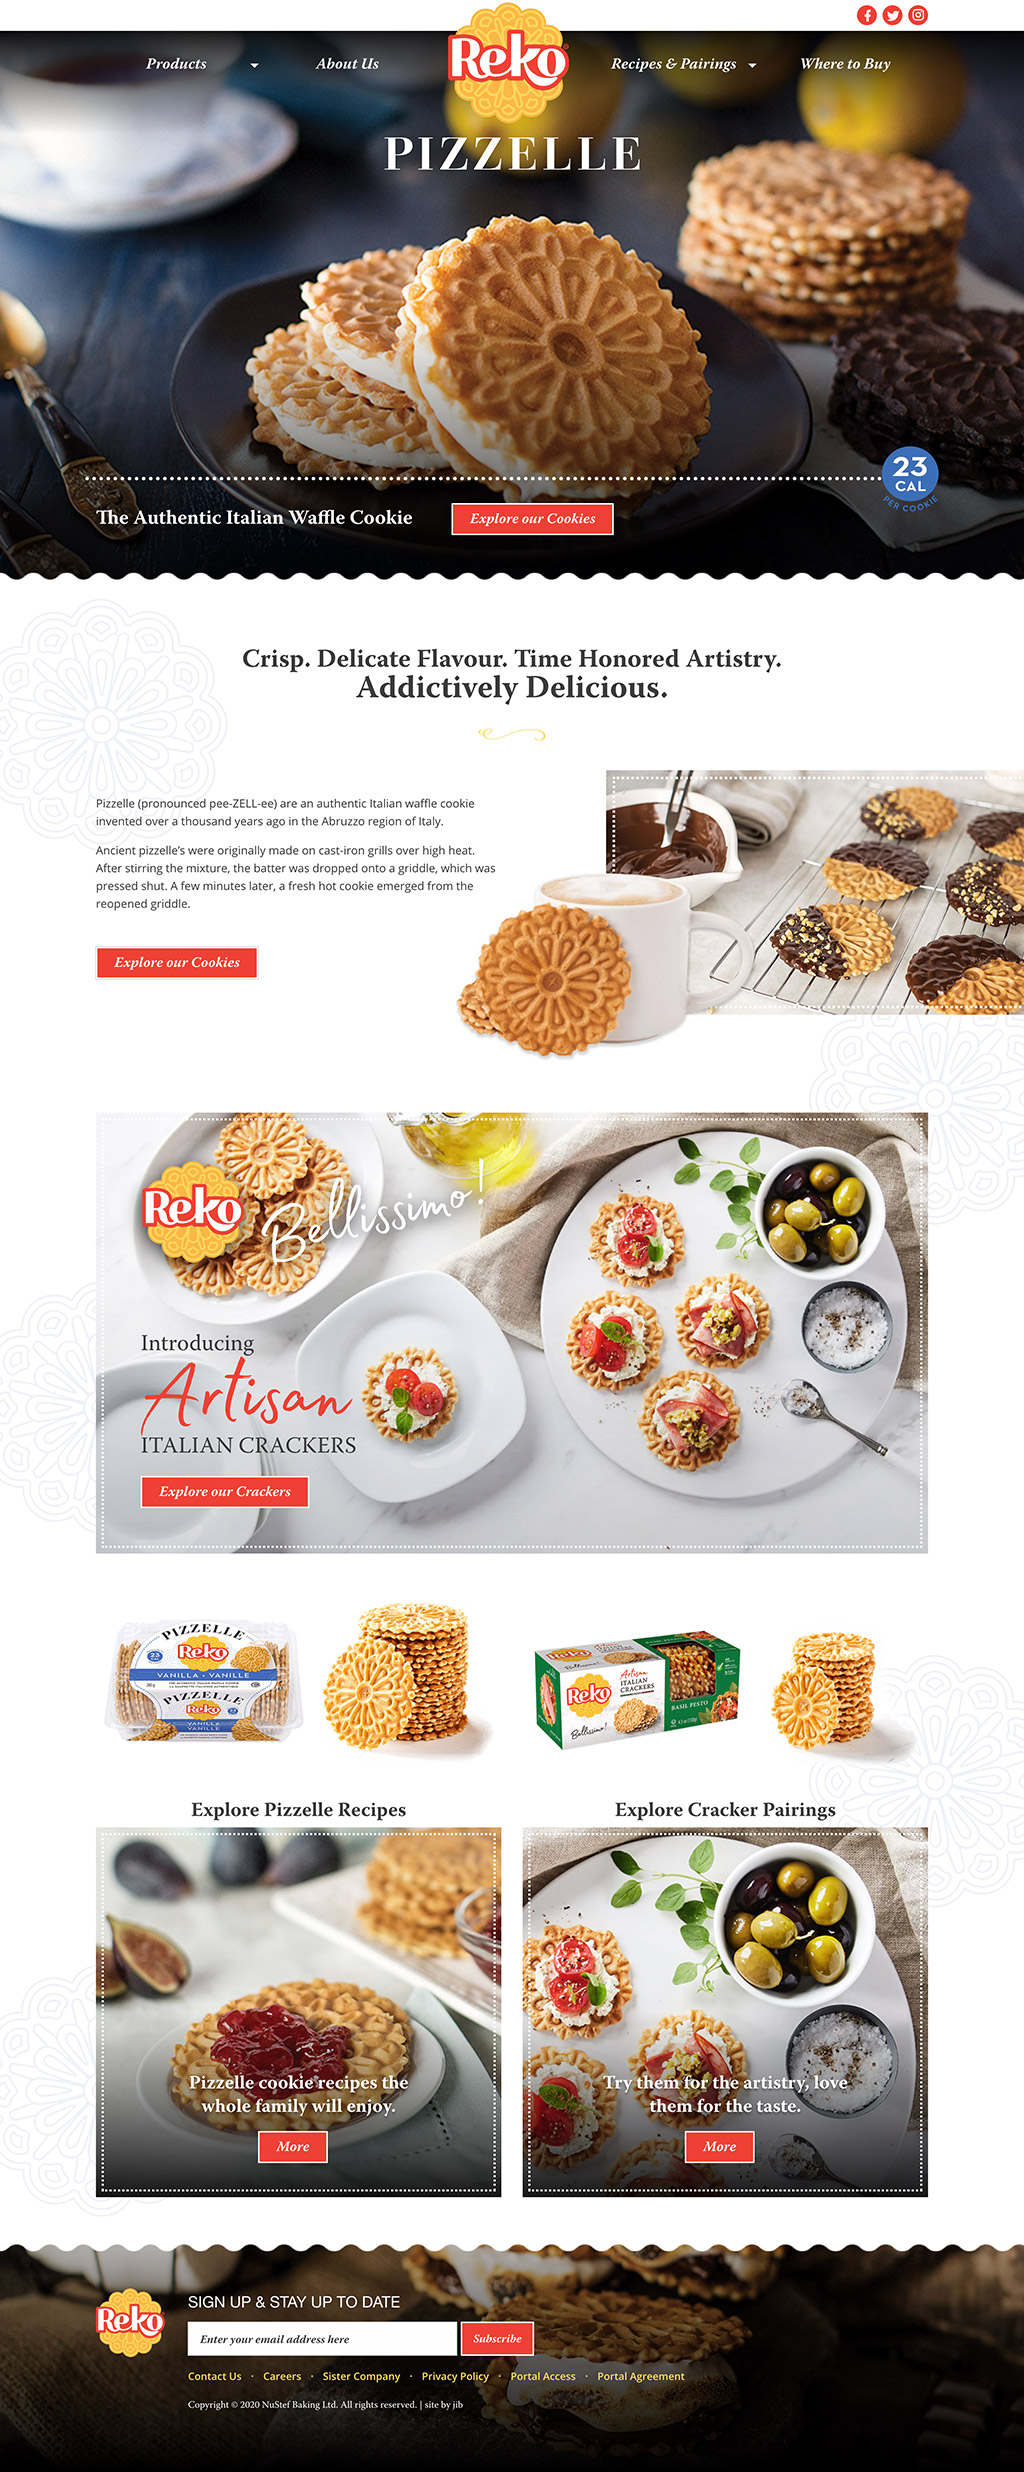 Reko Pizzelle Website